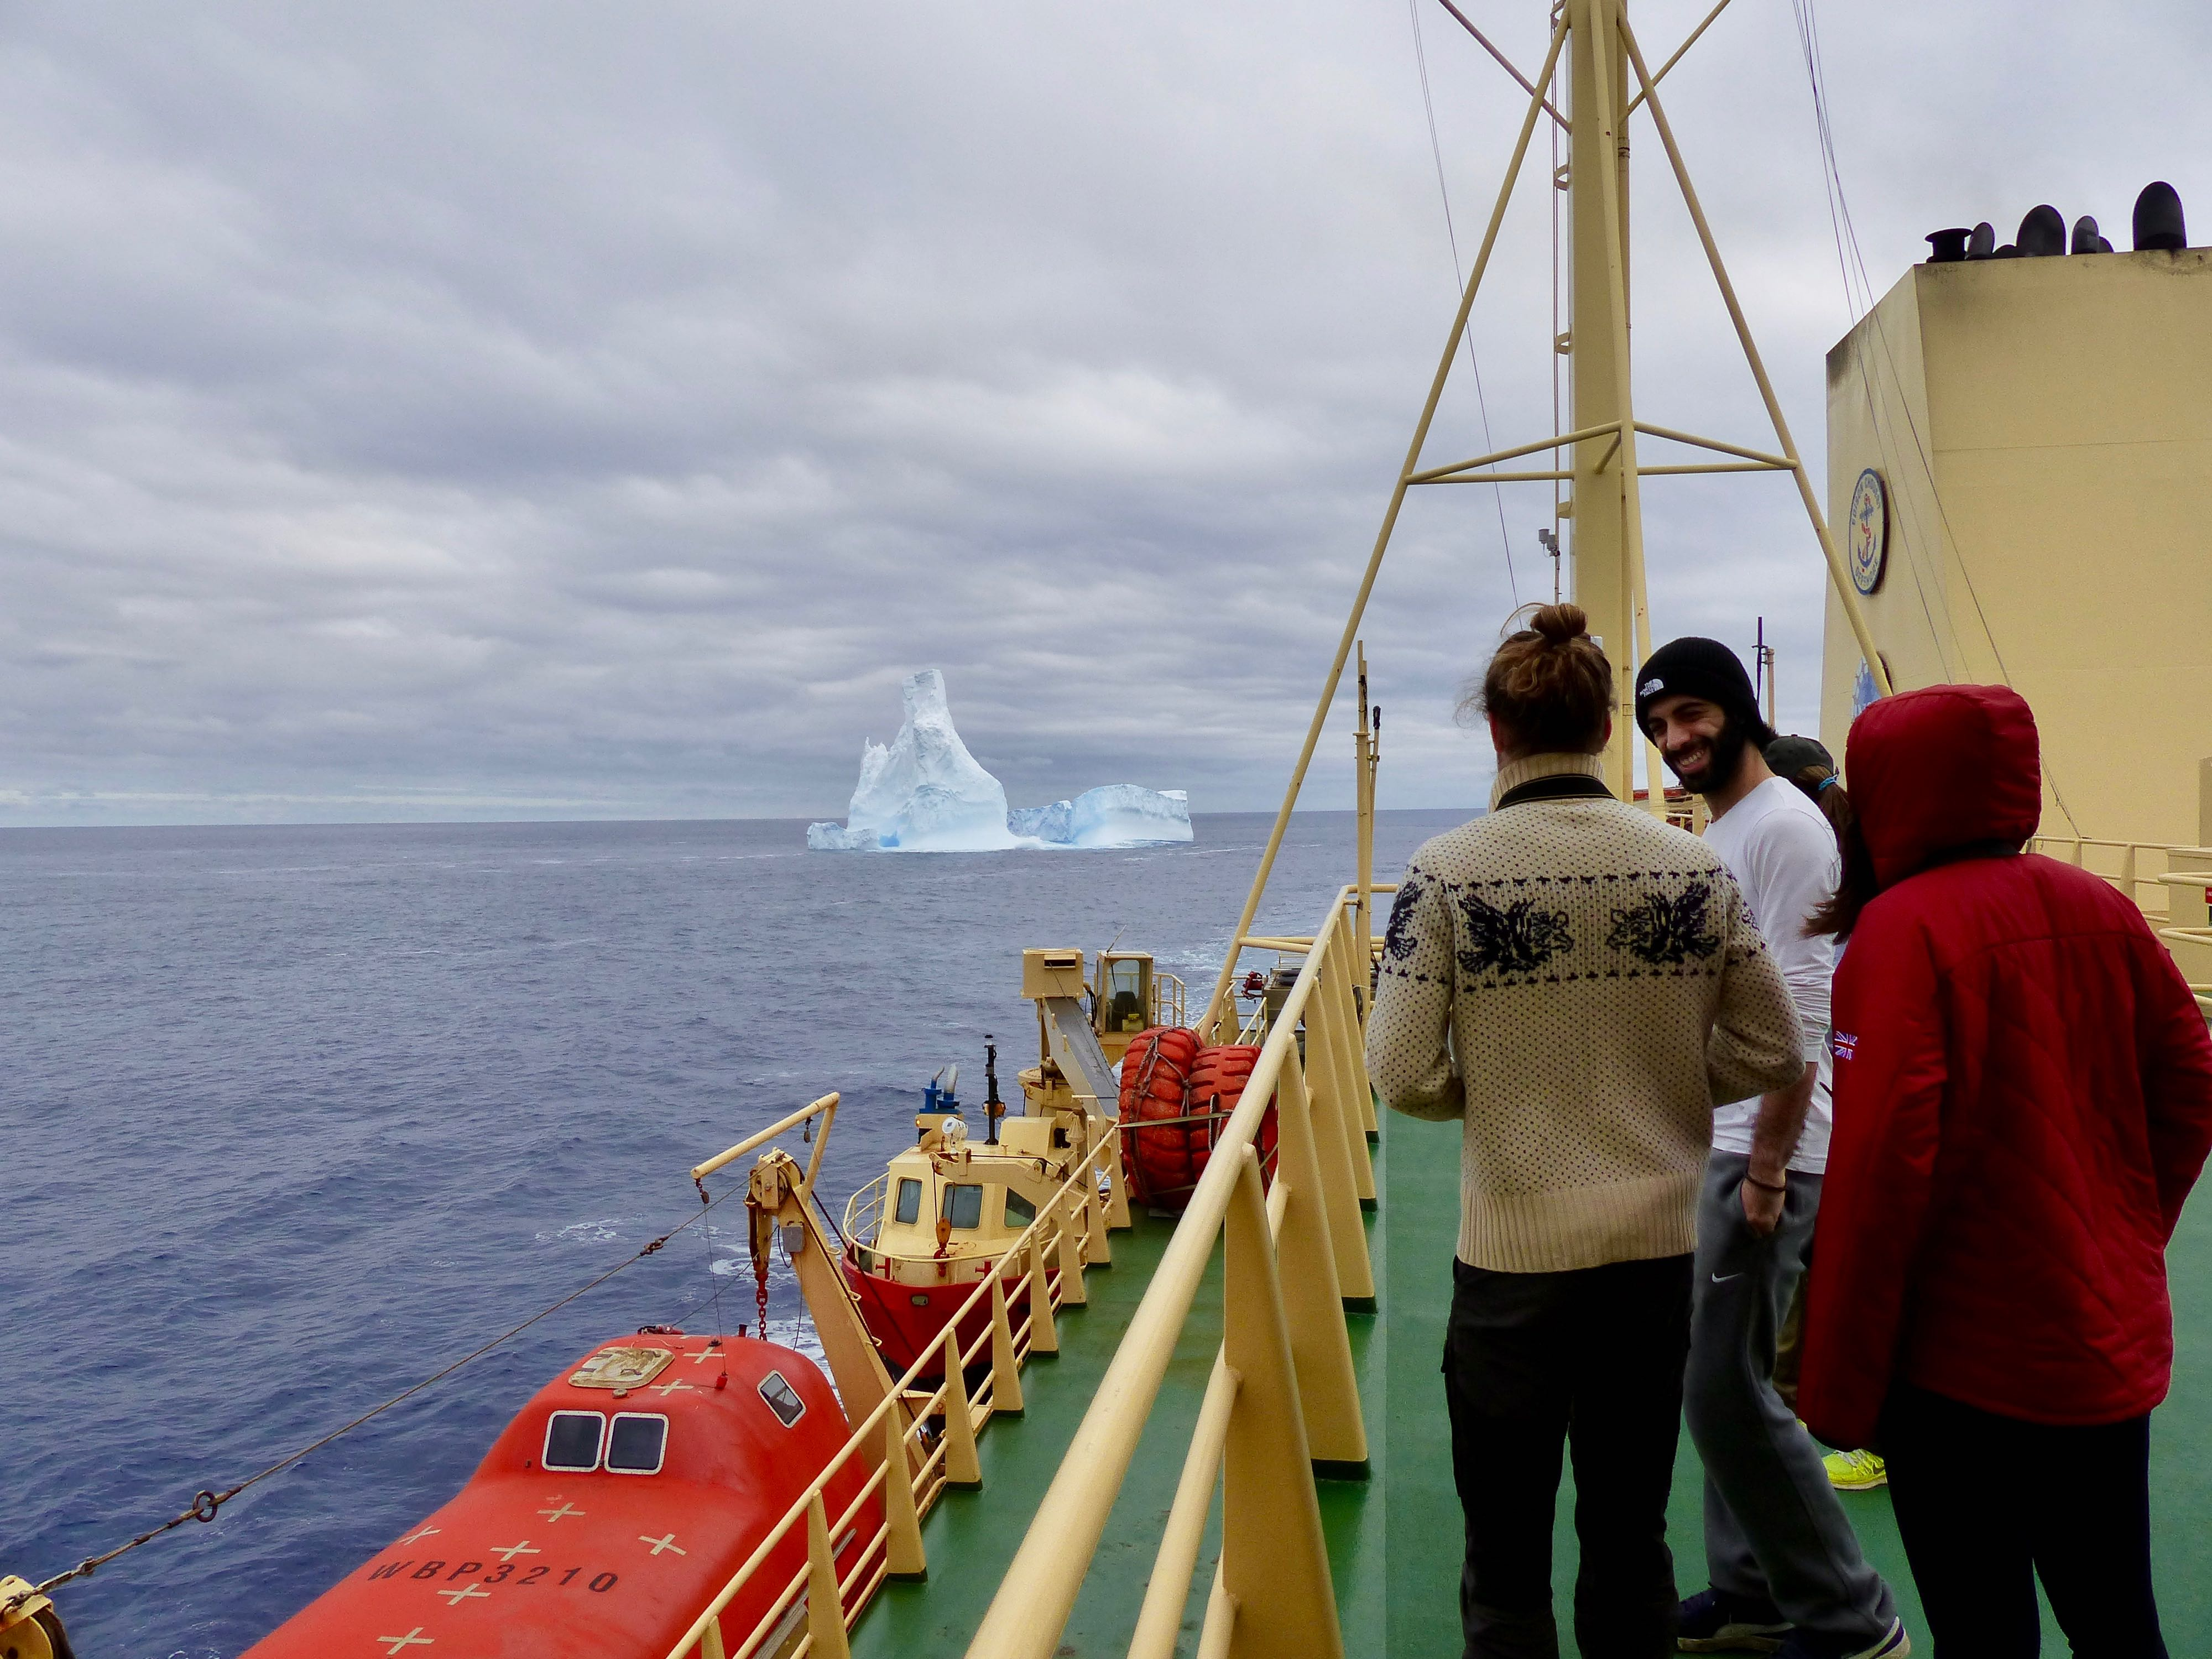 The iceberg as viewed with the R/V Palmer in the foreground.